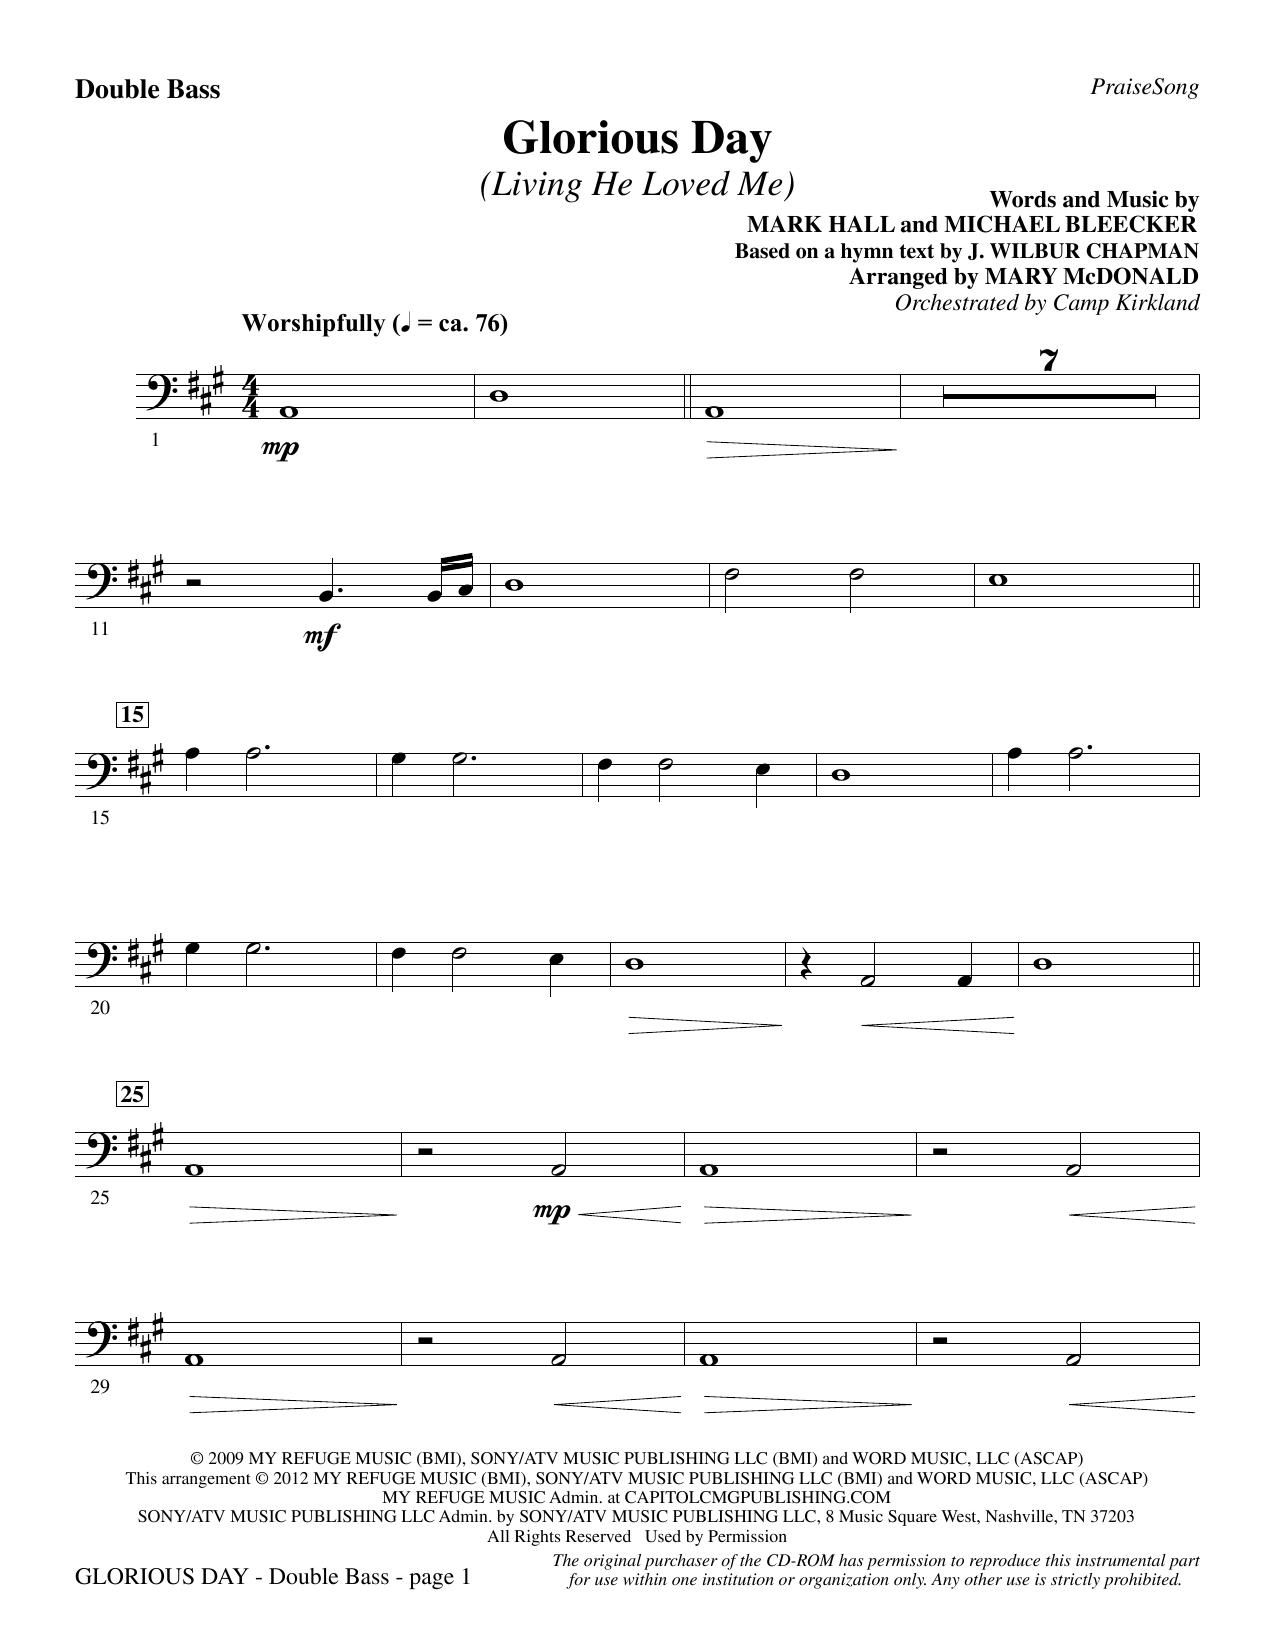 Glorious Day (Living He Loved Me) - Double Bass Sheet Music